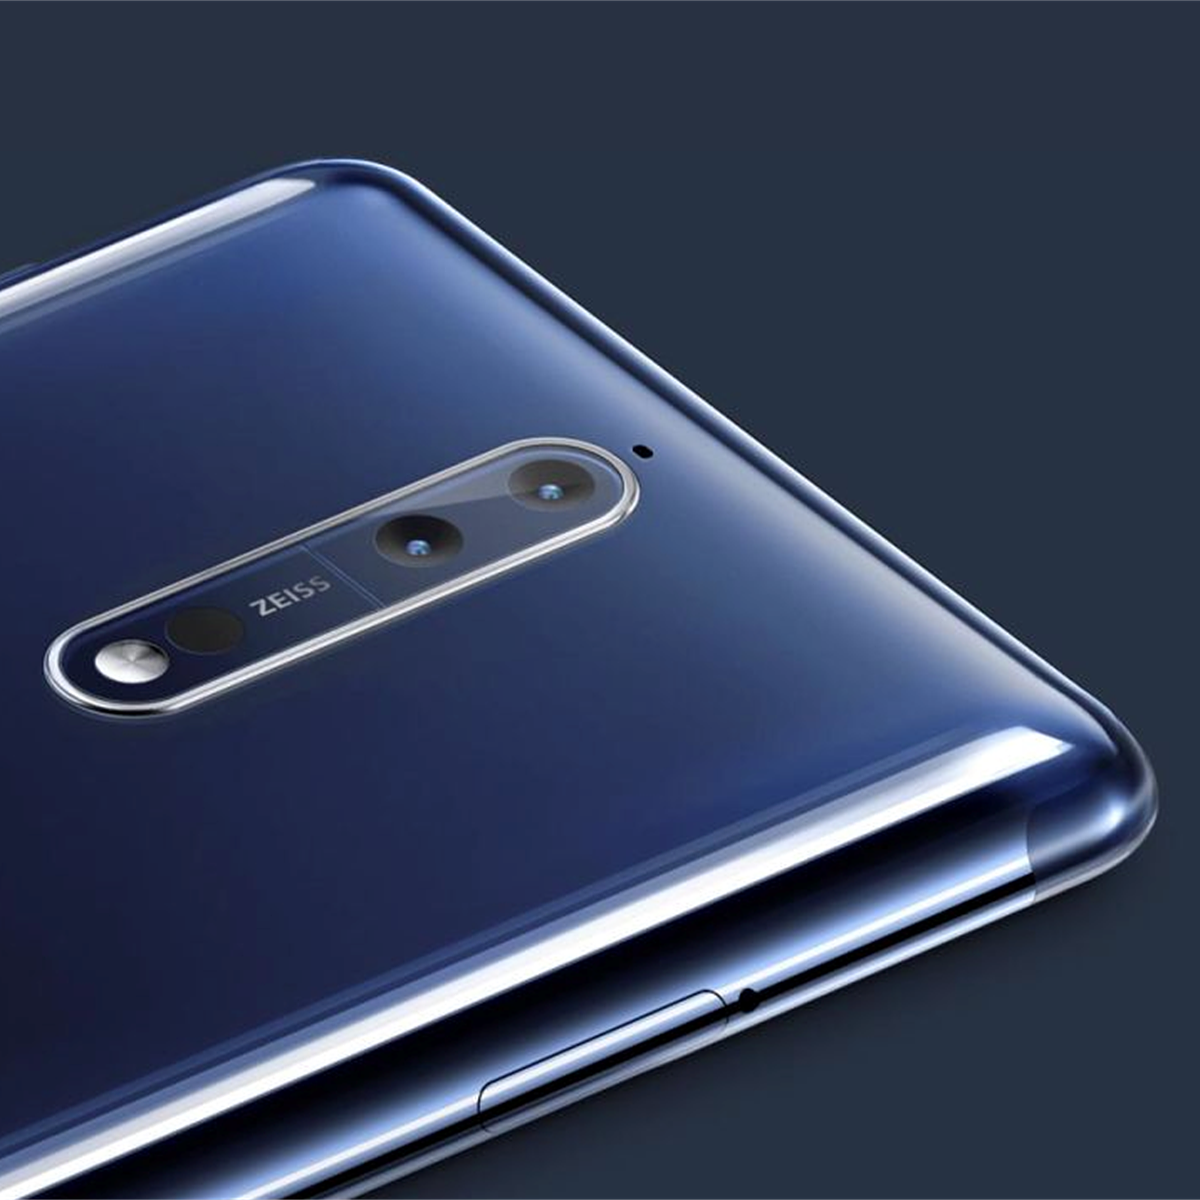 Nokia 8 update adds new Pro Camera mode with manual controls: Digital  Photography Review